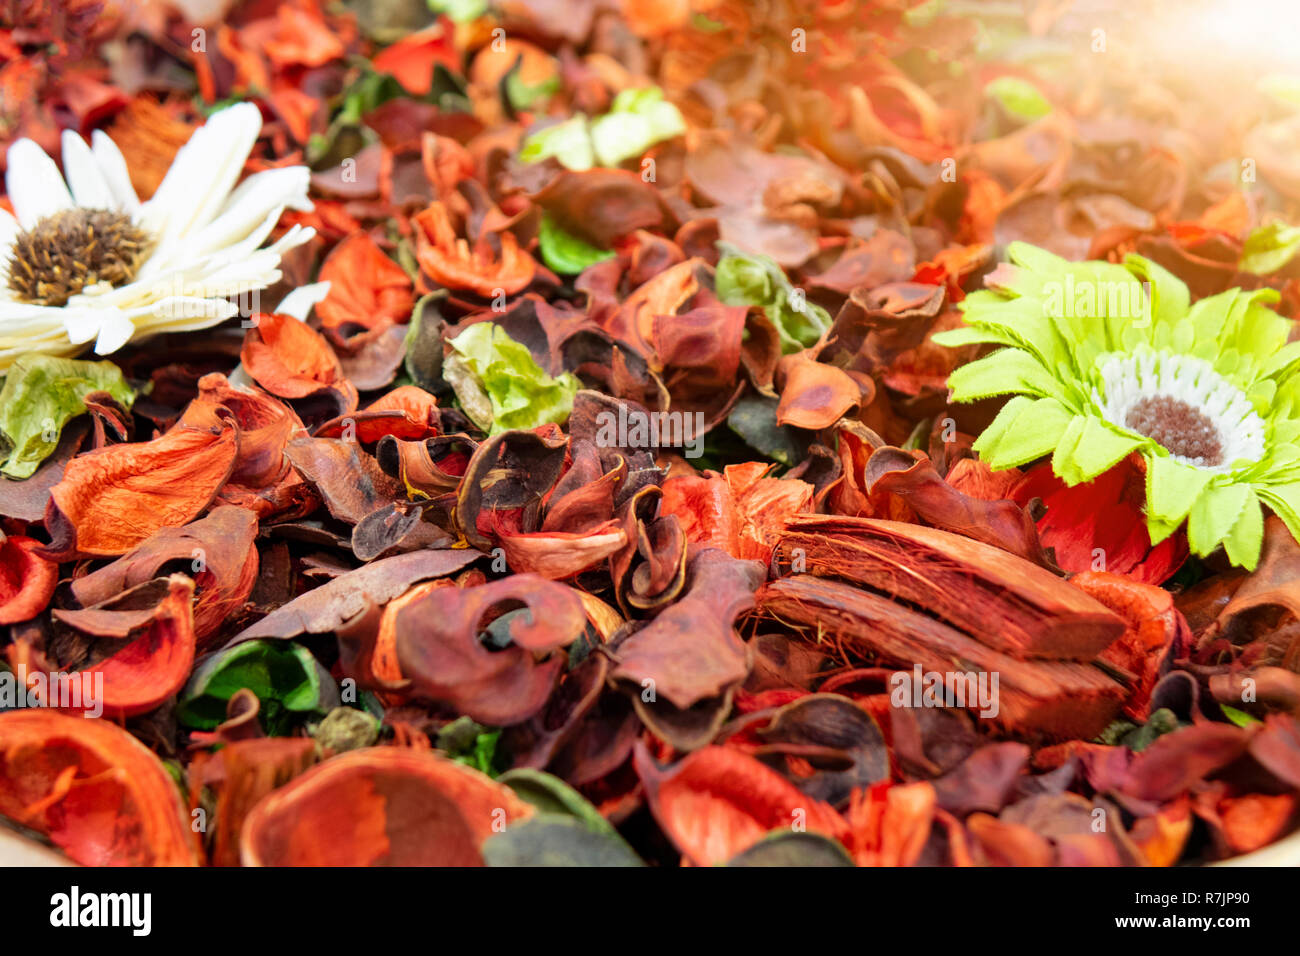 Multicolored dried flowers, used for soaps and perfumes as well as coloring, dyes and as an ingredient in foods Stock Photo